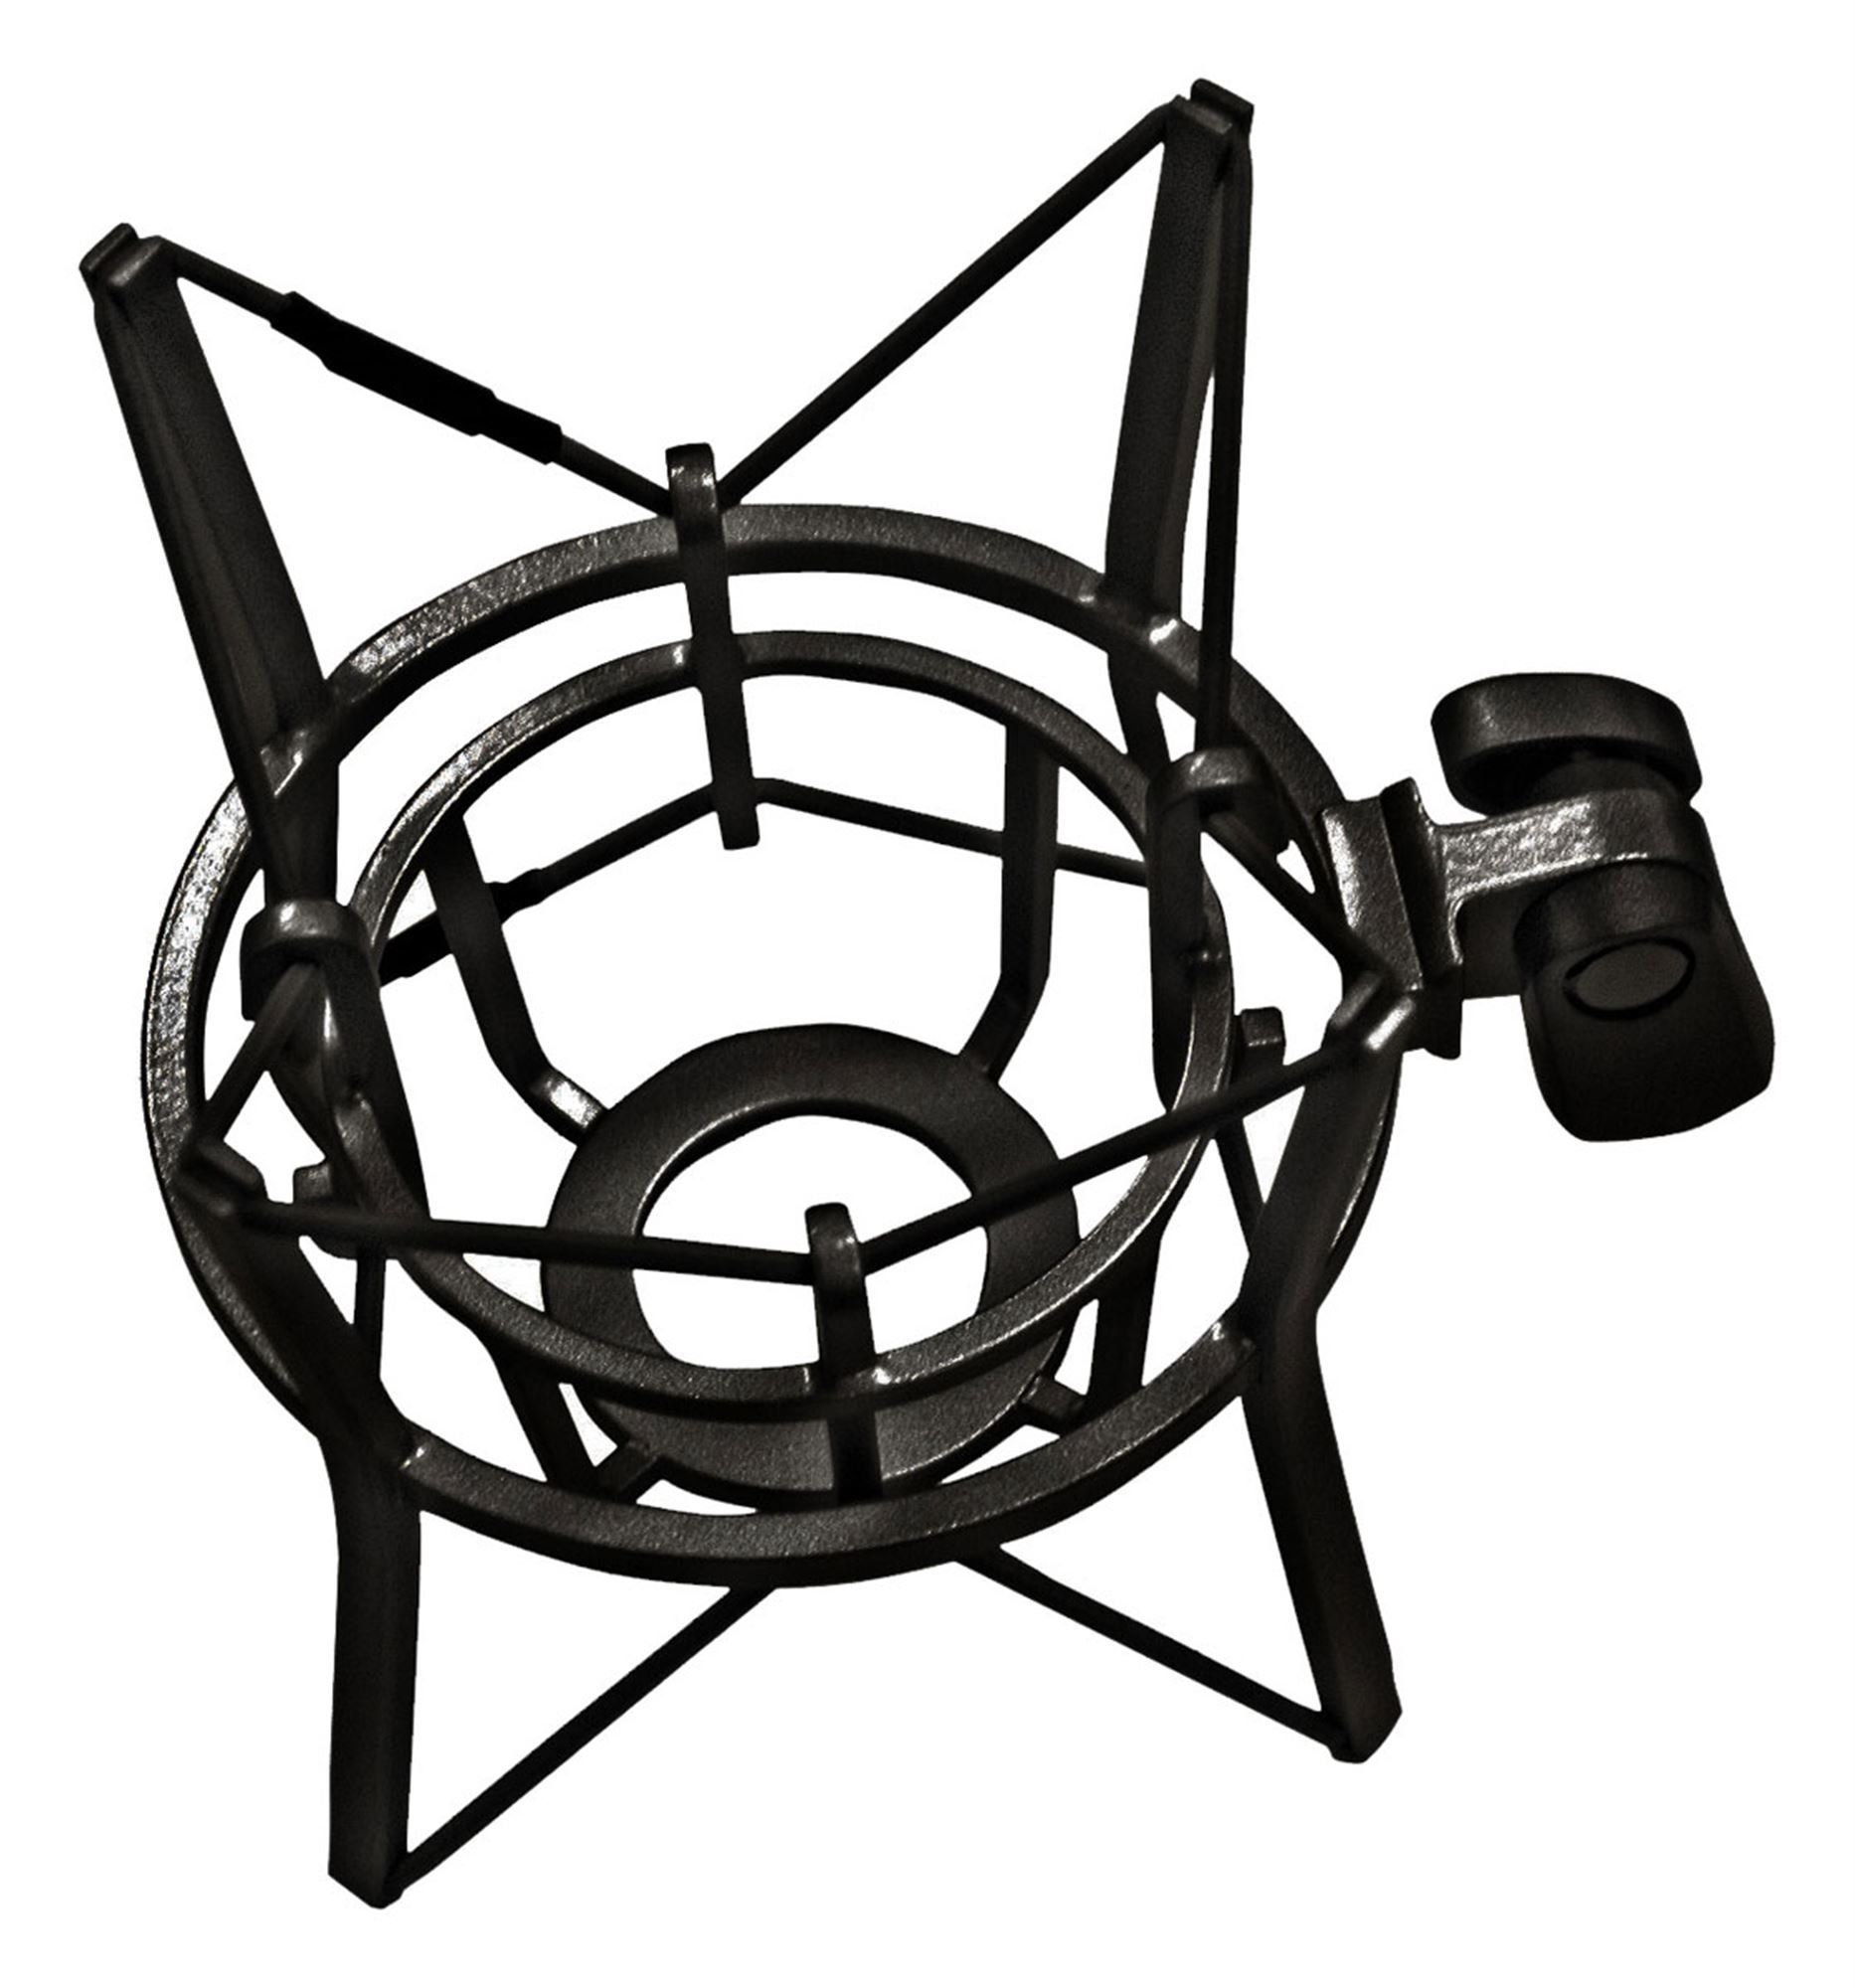 Rode PSM1 Shock Mount For Podcaster, Procaster, PSA1, and DS1 Microphones